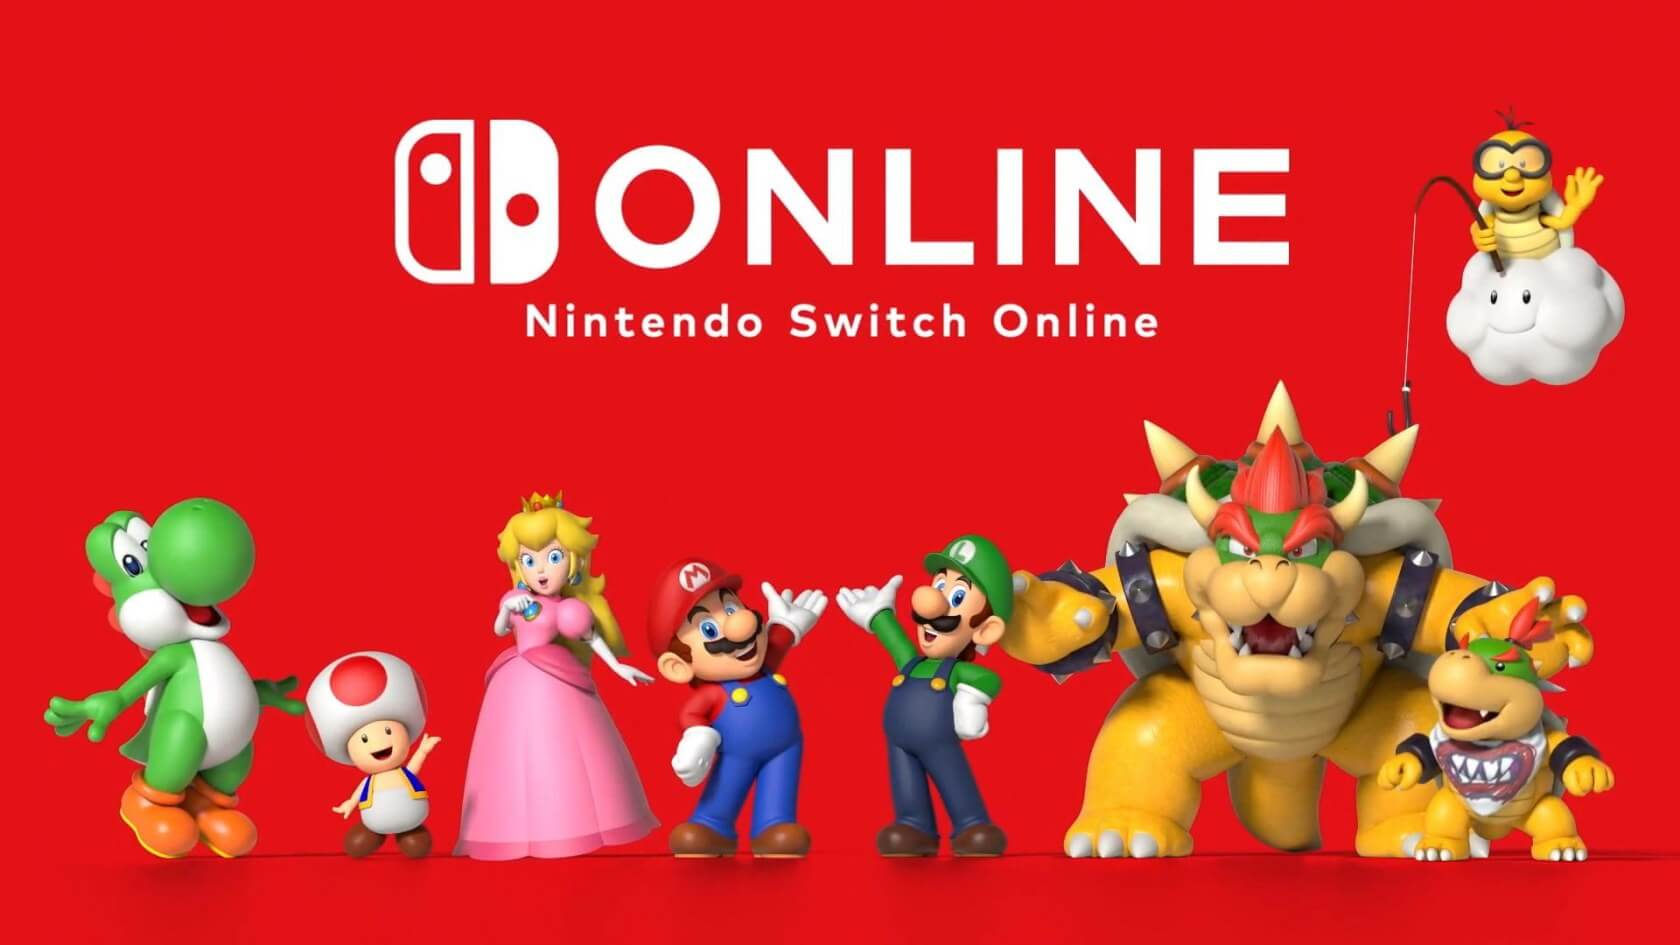 Nintendo confirms Gold Points can be used to purchase Switch Online subscriptions